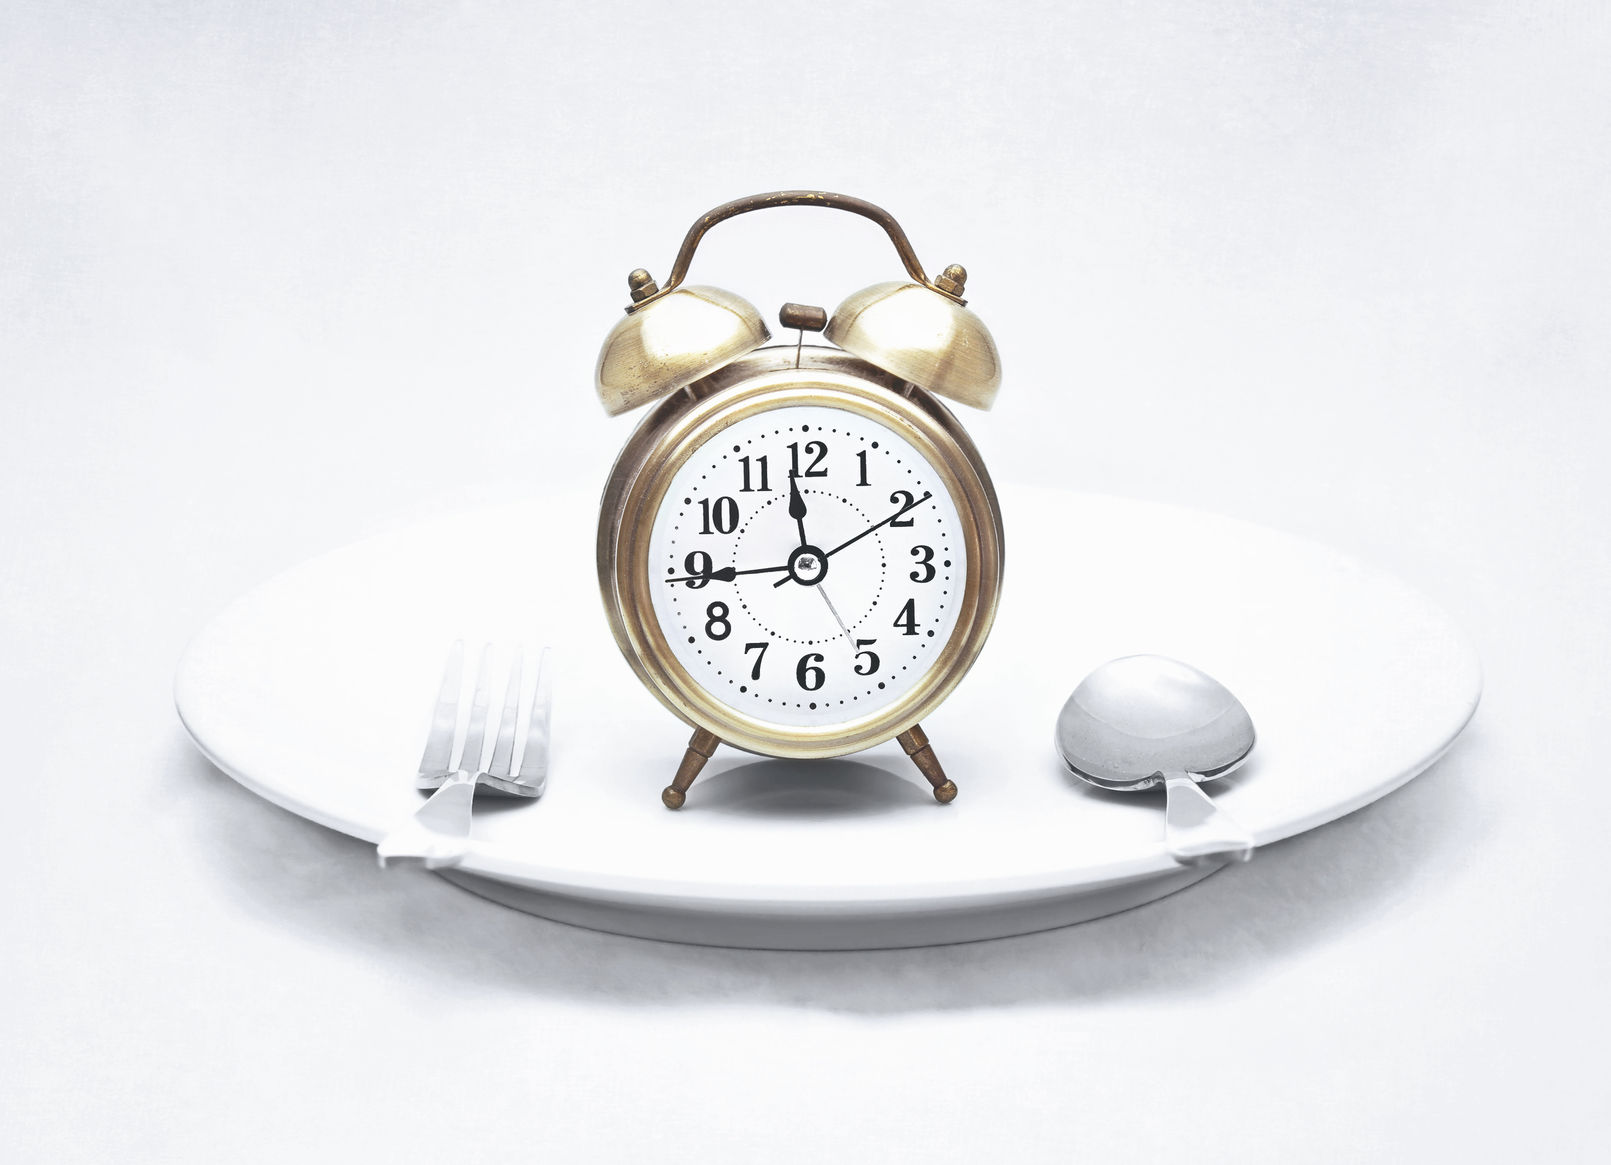 Intermittent Fasting - Alternate Day Fasting, Modified Fasting, and Time Restricted Feeding   https://physiologicnyc.com/clinical-nutrition/